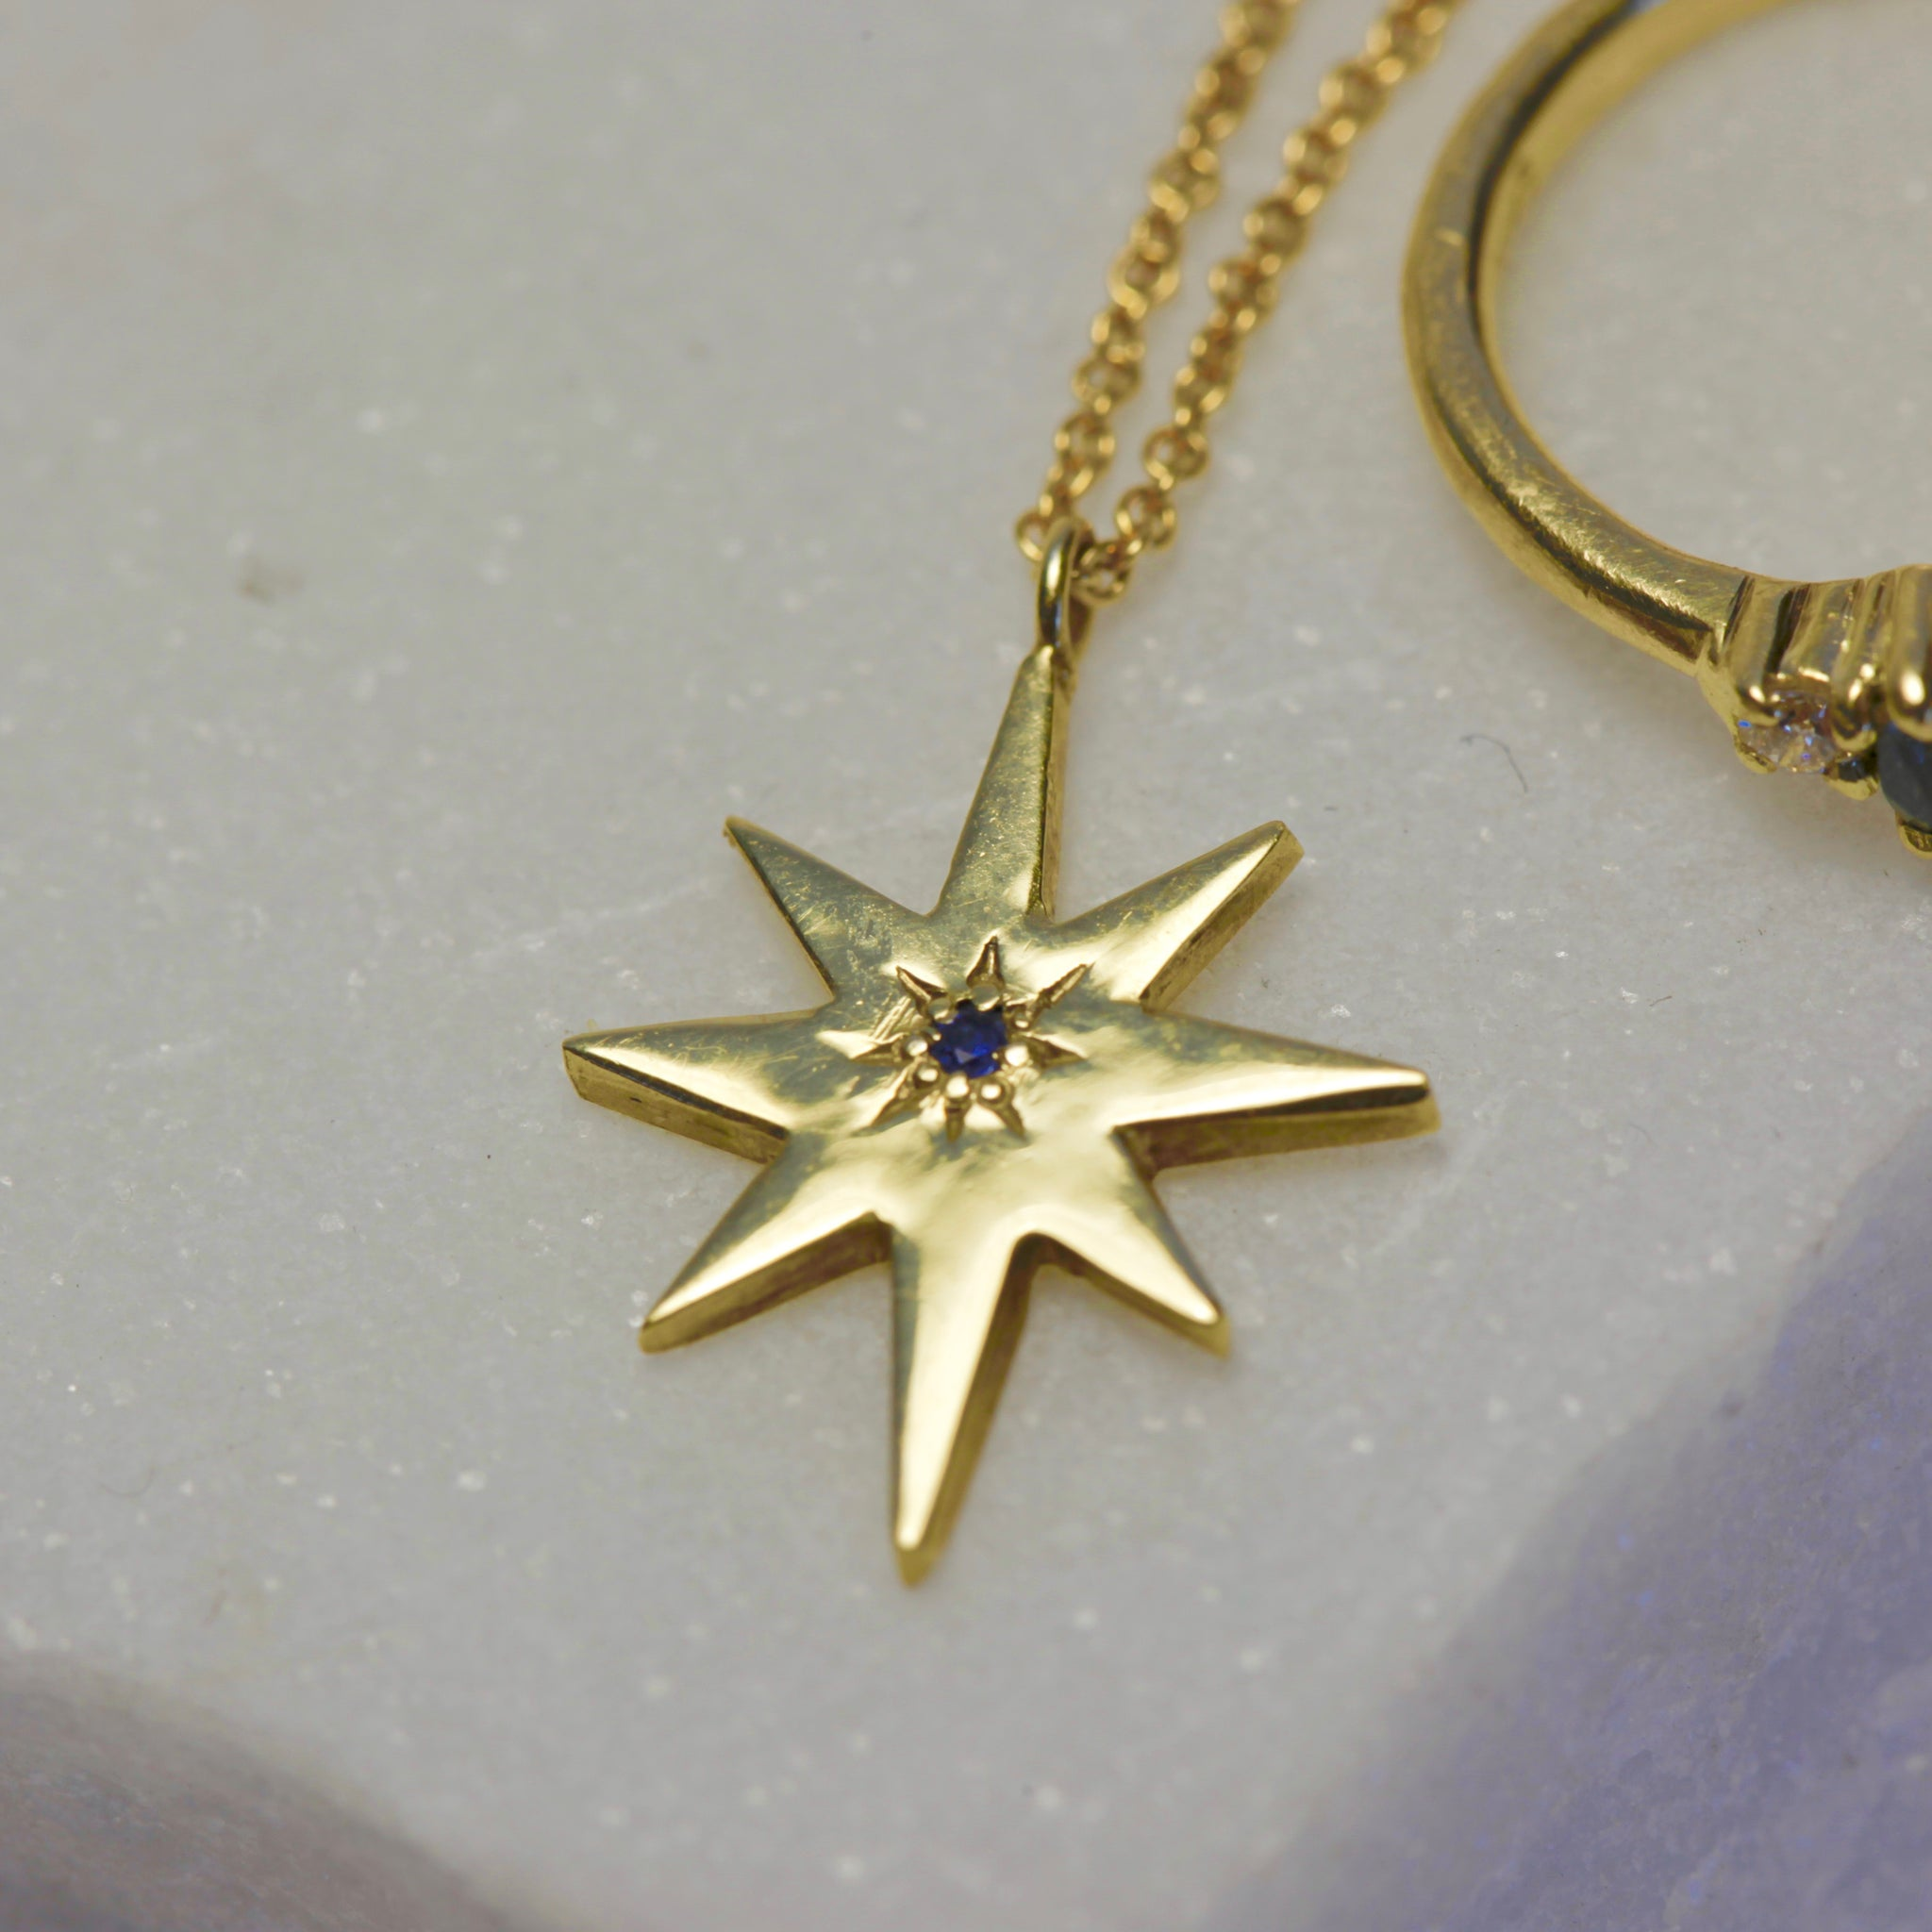 9ct gold star pendant with sapphire on gold chain, Custom Bespoke Handmade.